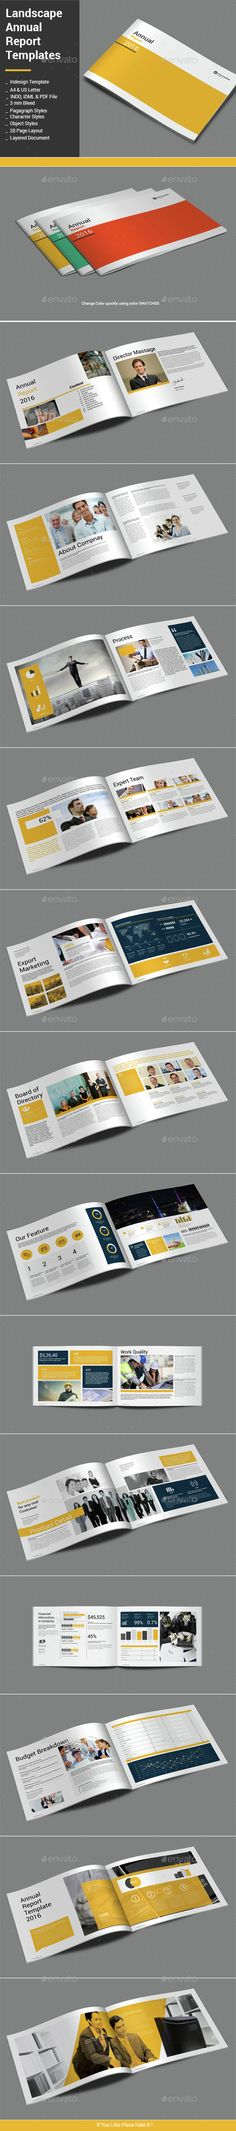 Landscape Annual Report Template InDesign INDD. Download here: http://graphicriver.net/item/landscape-annual-report-template/14998611?ref=ksioks